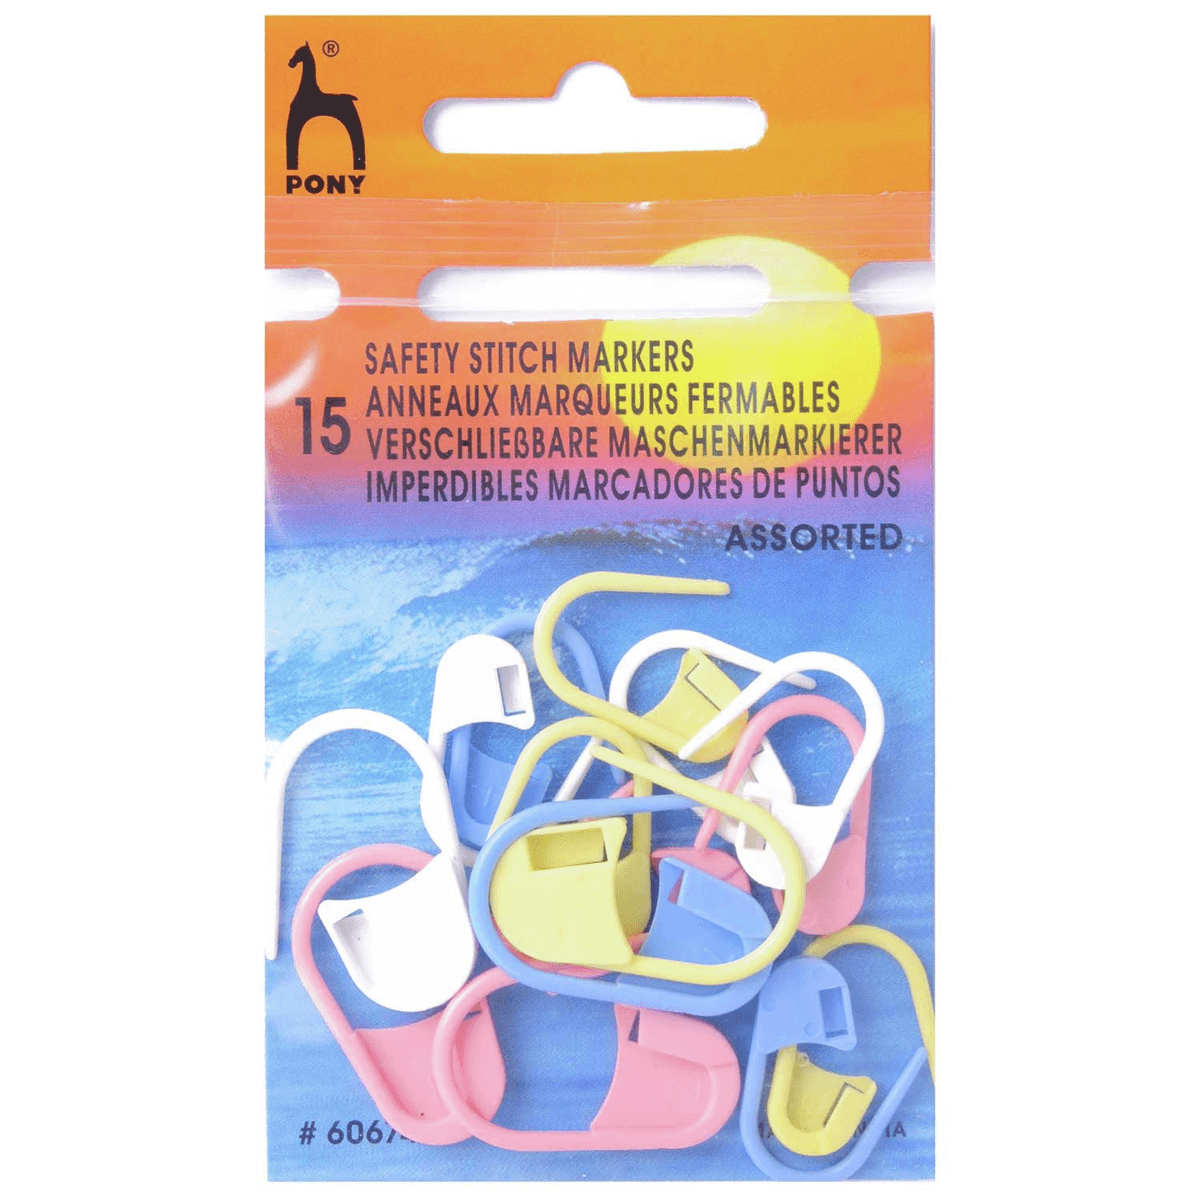 15 x Pony Safety Stitch Markers, Assorted Colours and Sizes